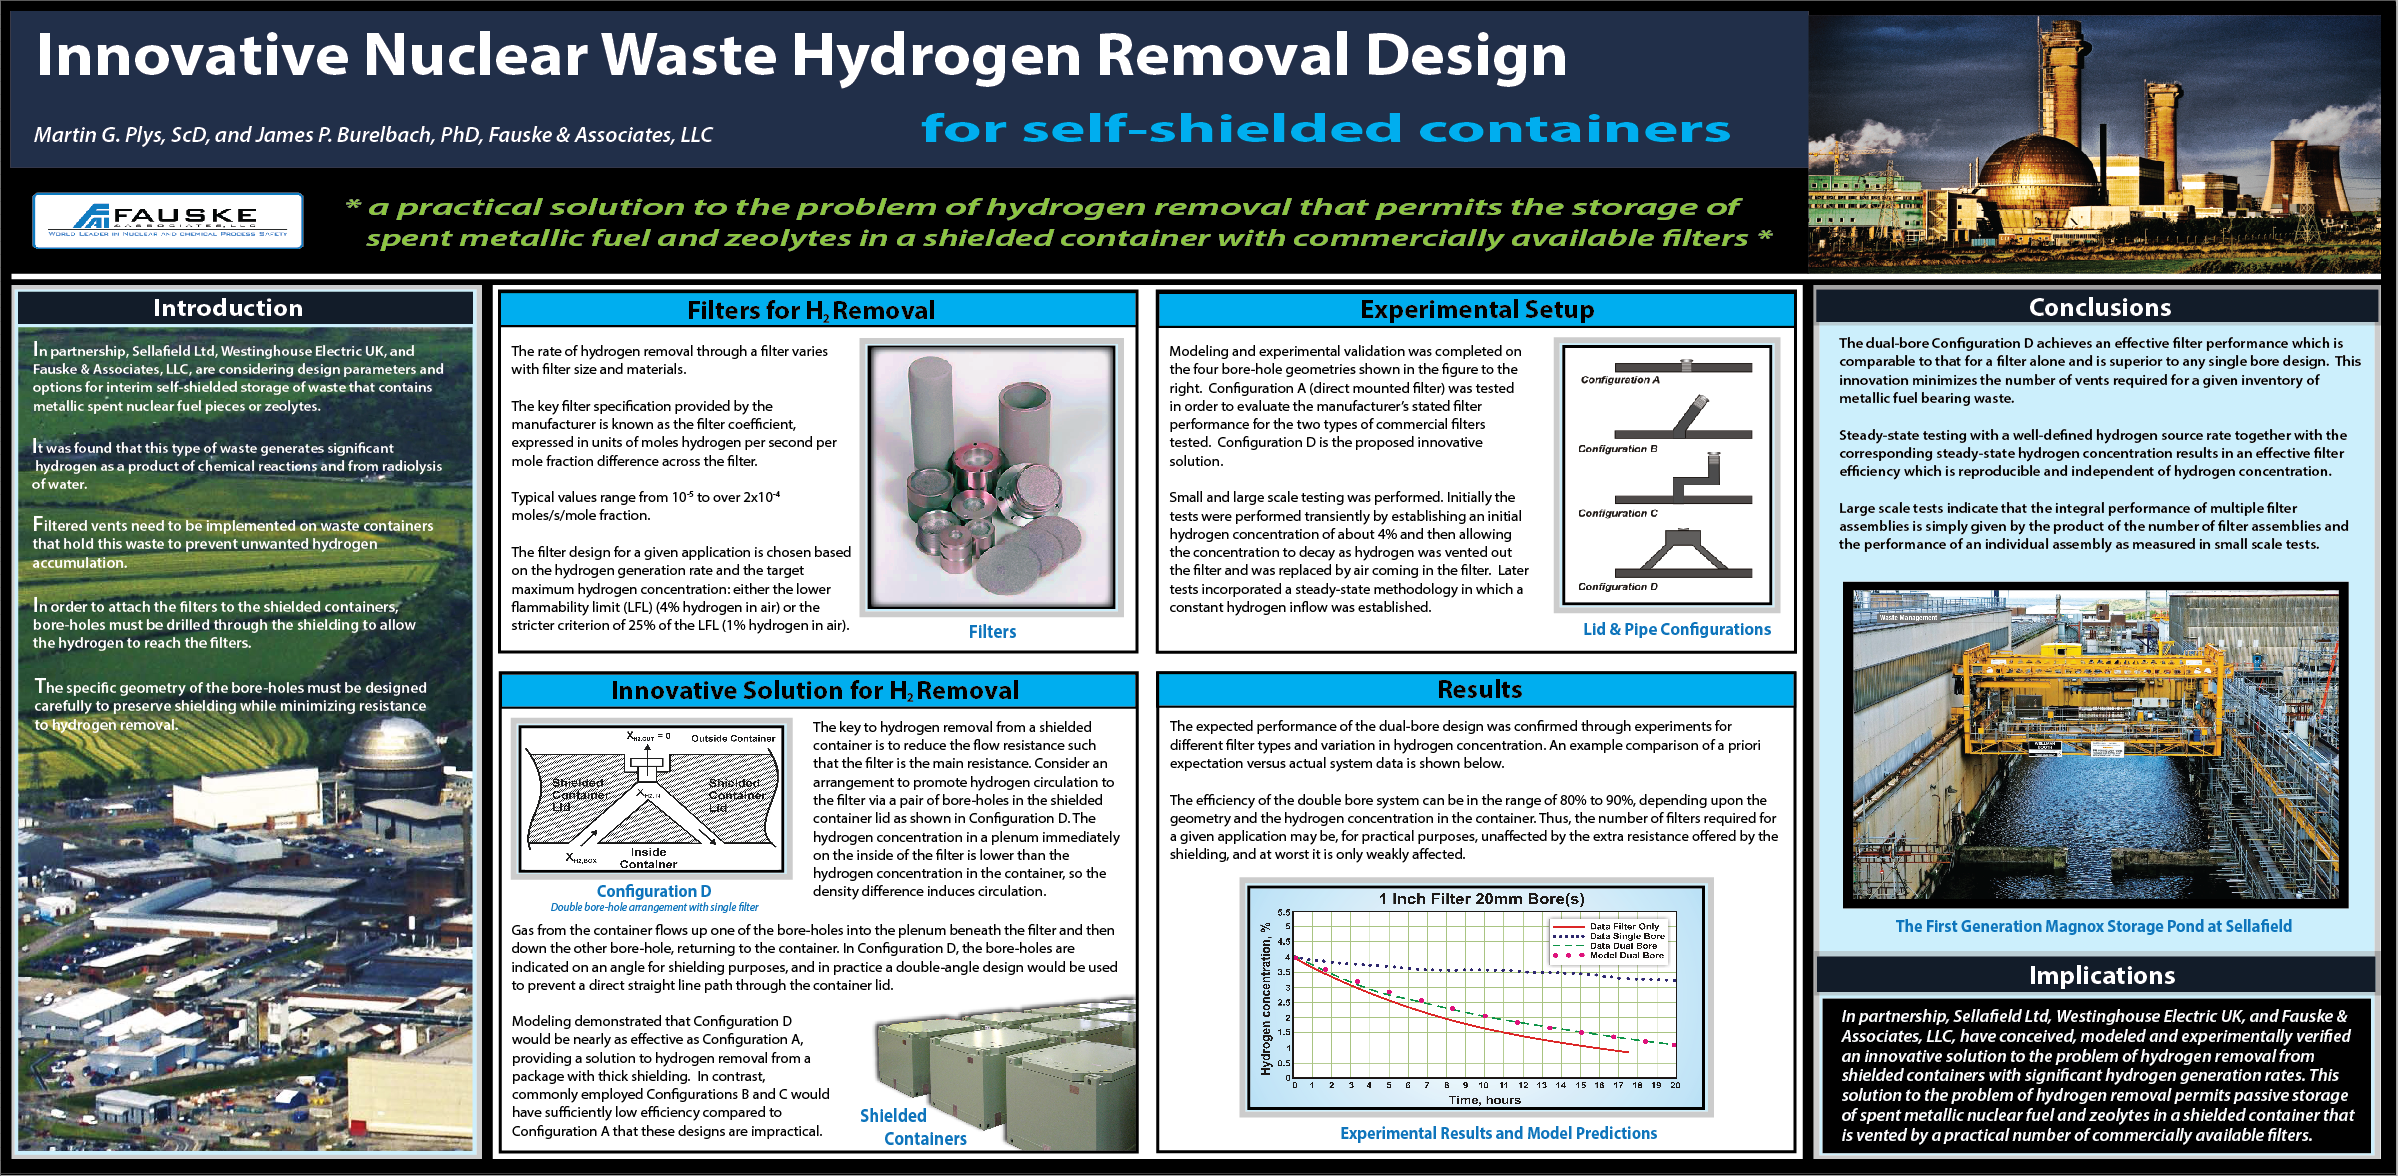 Innovative Nuclear Waste Hydrogen Removal Design & Nuclear Waste Processing